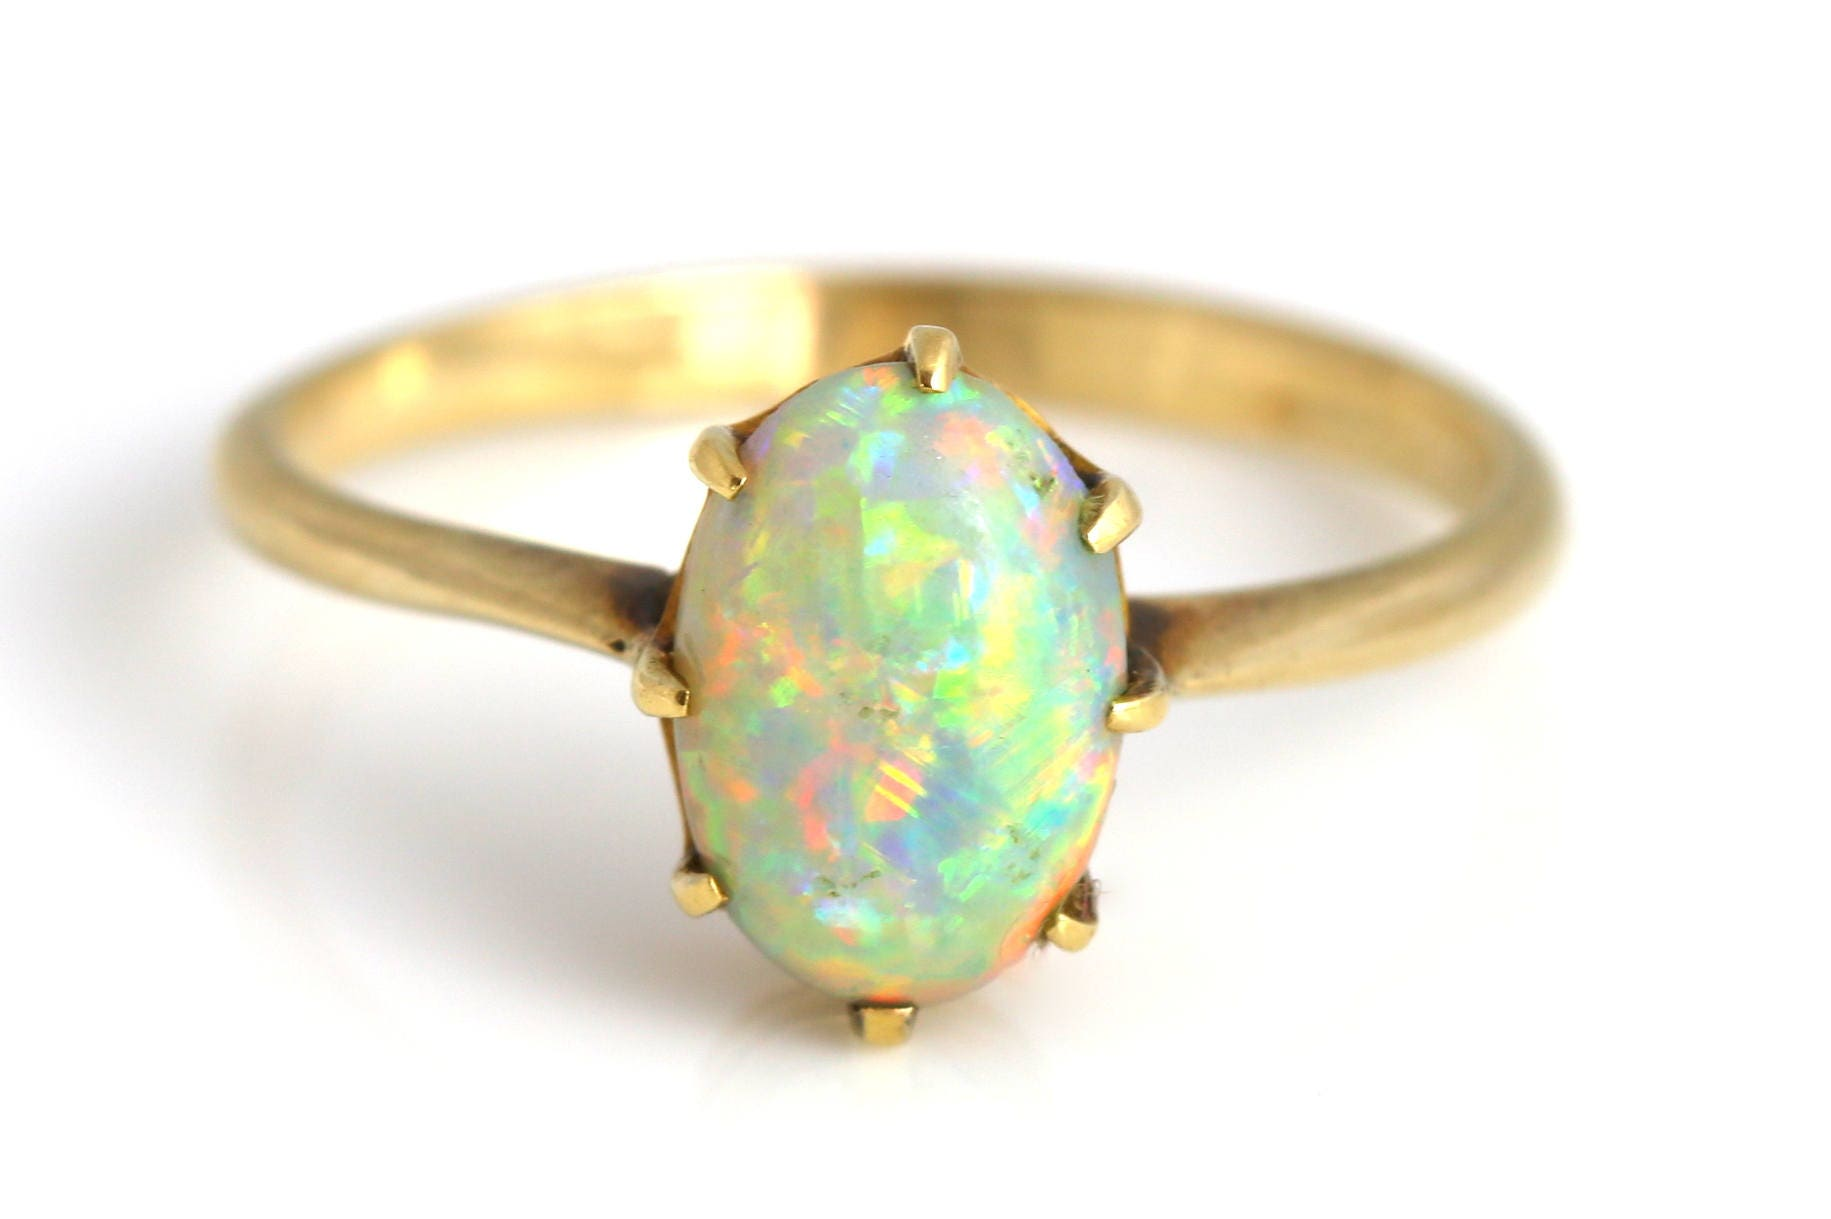 9ct Gold Antique Opal Ring Stunning 9ct Gold Art Nouveau Opal Ring  c1900